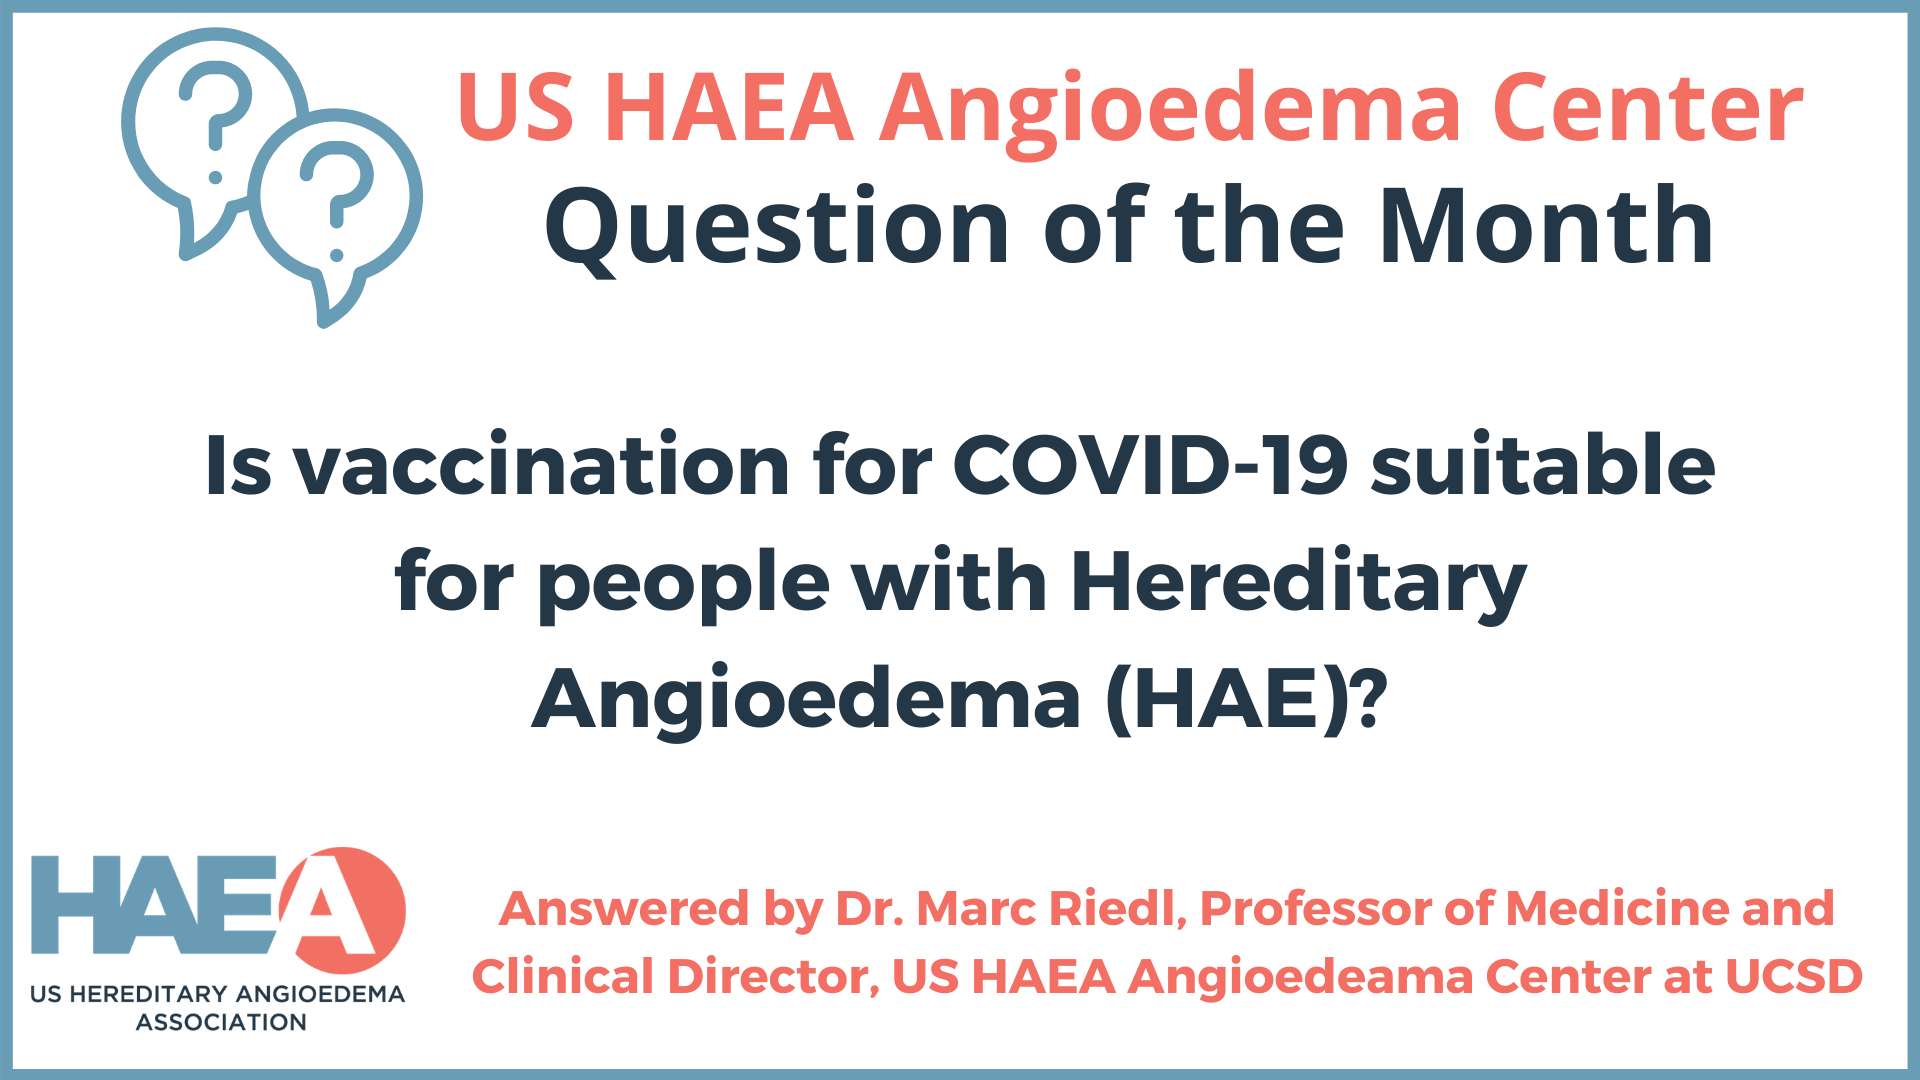 Is vaccination for COVID-19 suitable for people with Hereditary Angioedema (HAE)?